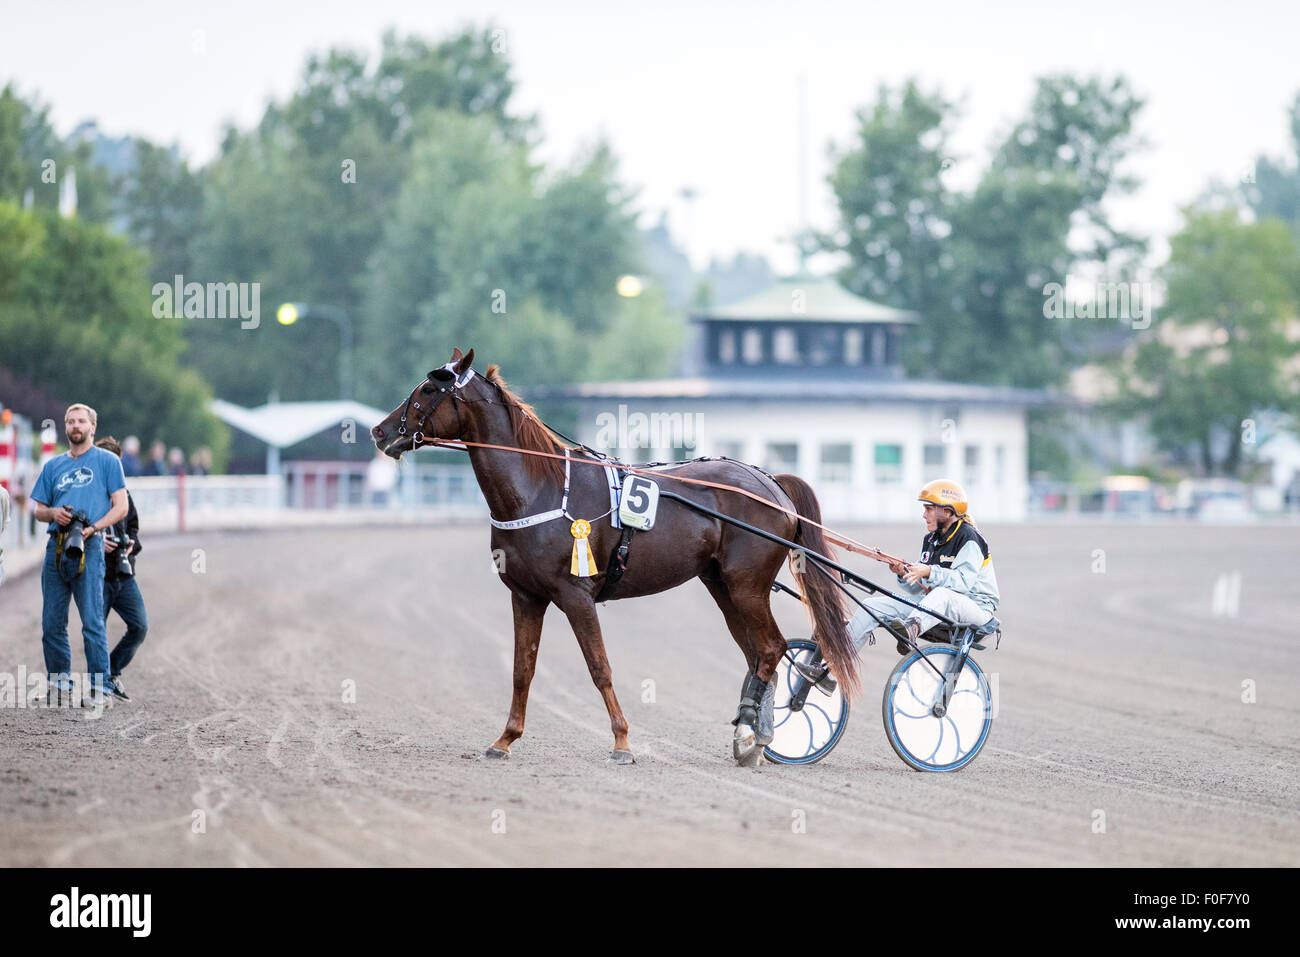 Order To Fly after winning at Solvalla horse racing track in V86 race #3 on August 5, 2015 - Stock Image